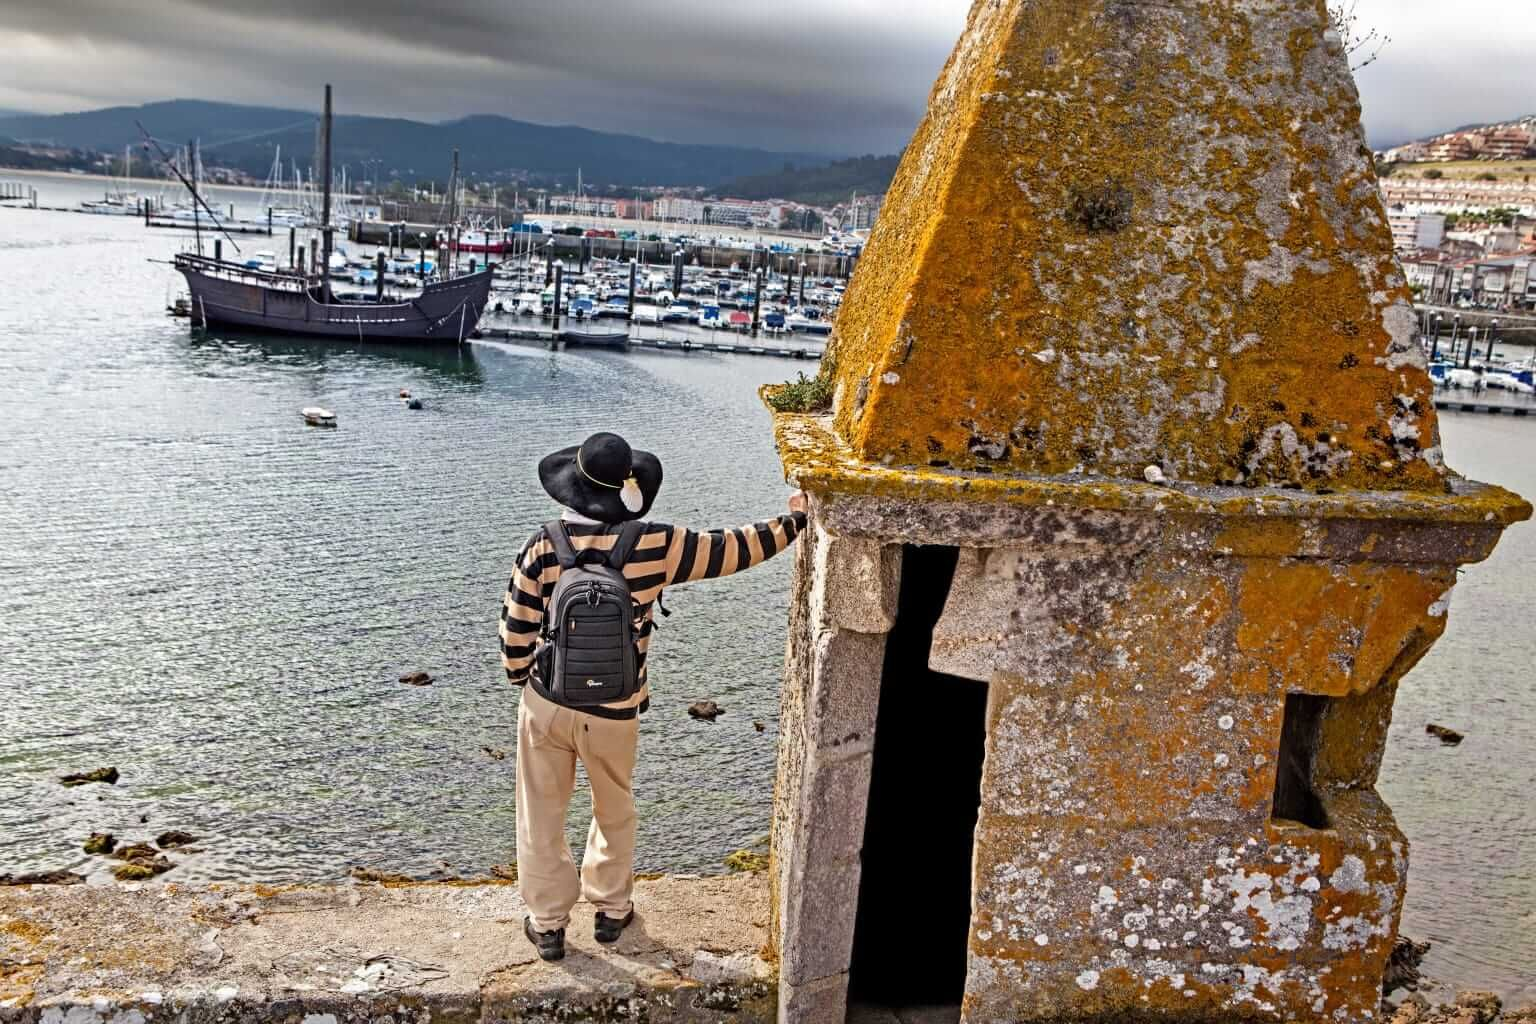 5 days Camino by Sea - A Xacobean Nautical Crossing